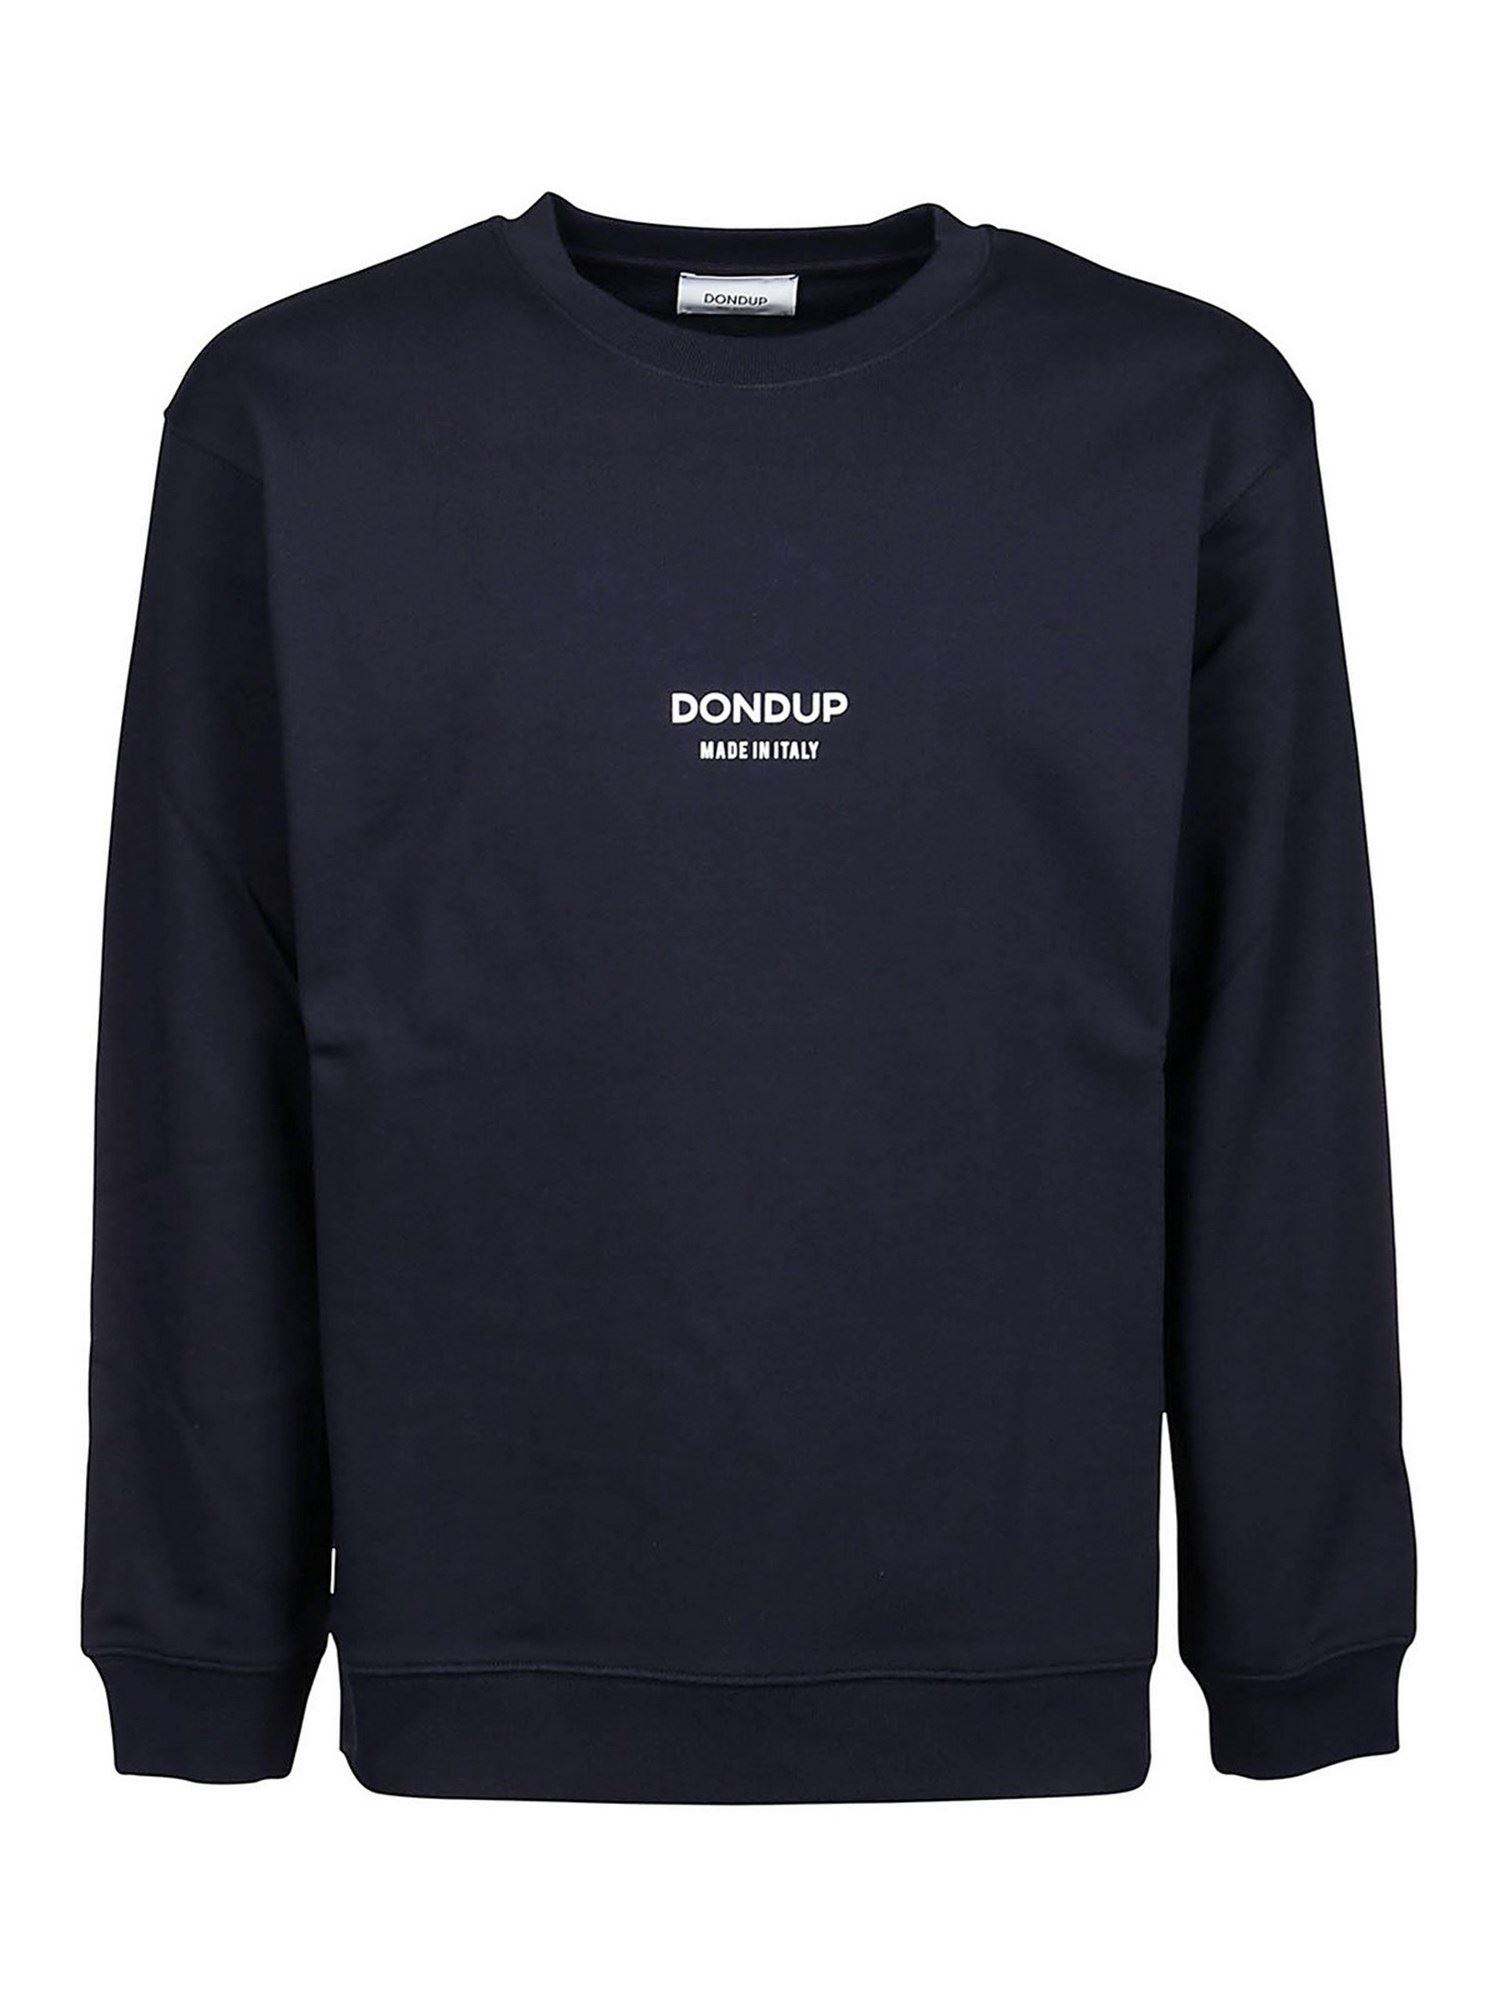 Dondup Cottons LOGO SWEATSHIRT IN BLUE